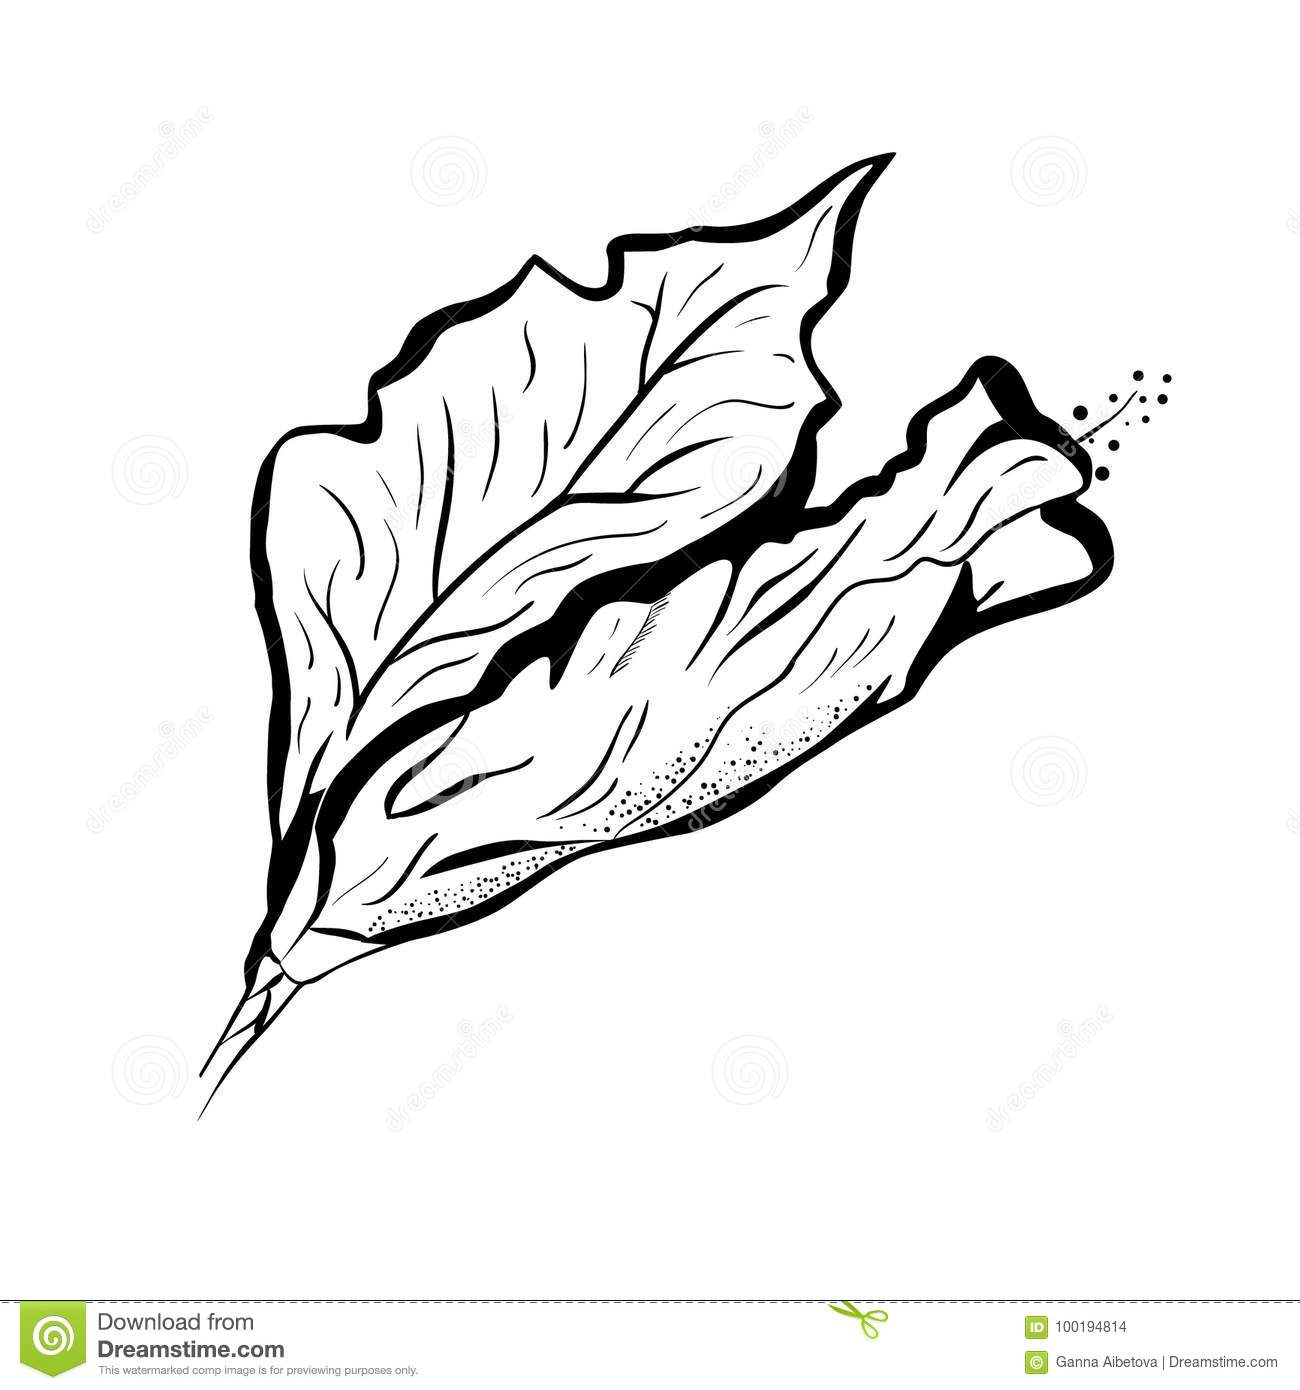 Hibiscus flower in tattoo style black and white graphic tropical download hibiscus flower in tattoo style black and white graphic tropical flower stock vector izmirmasajfo